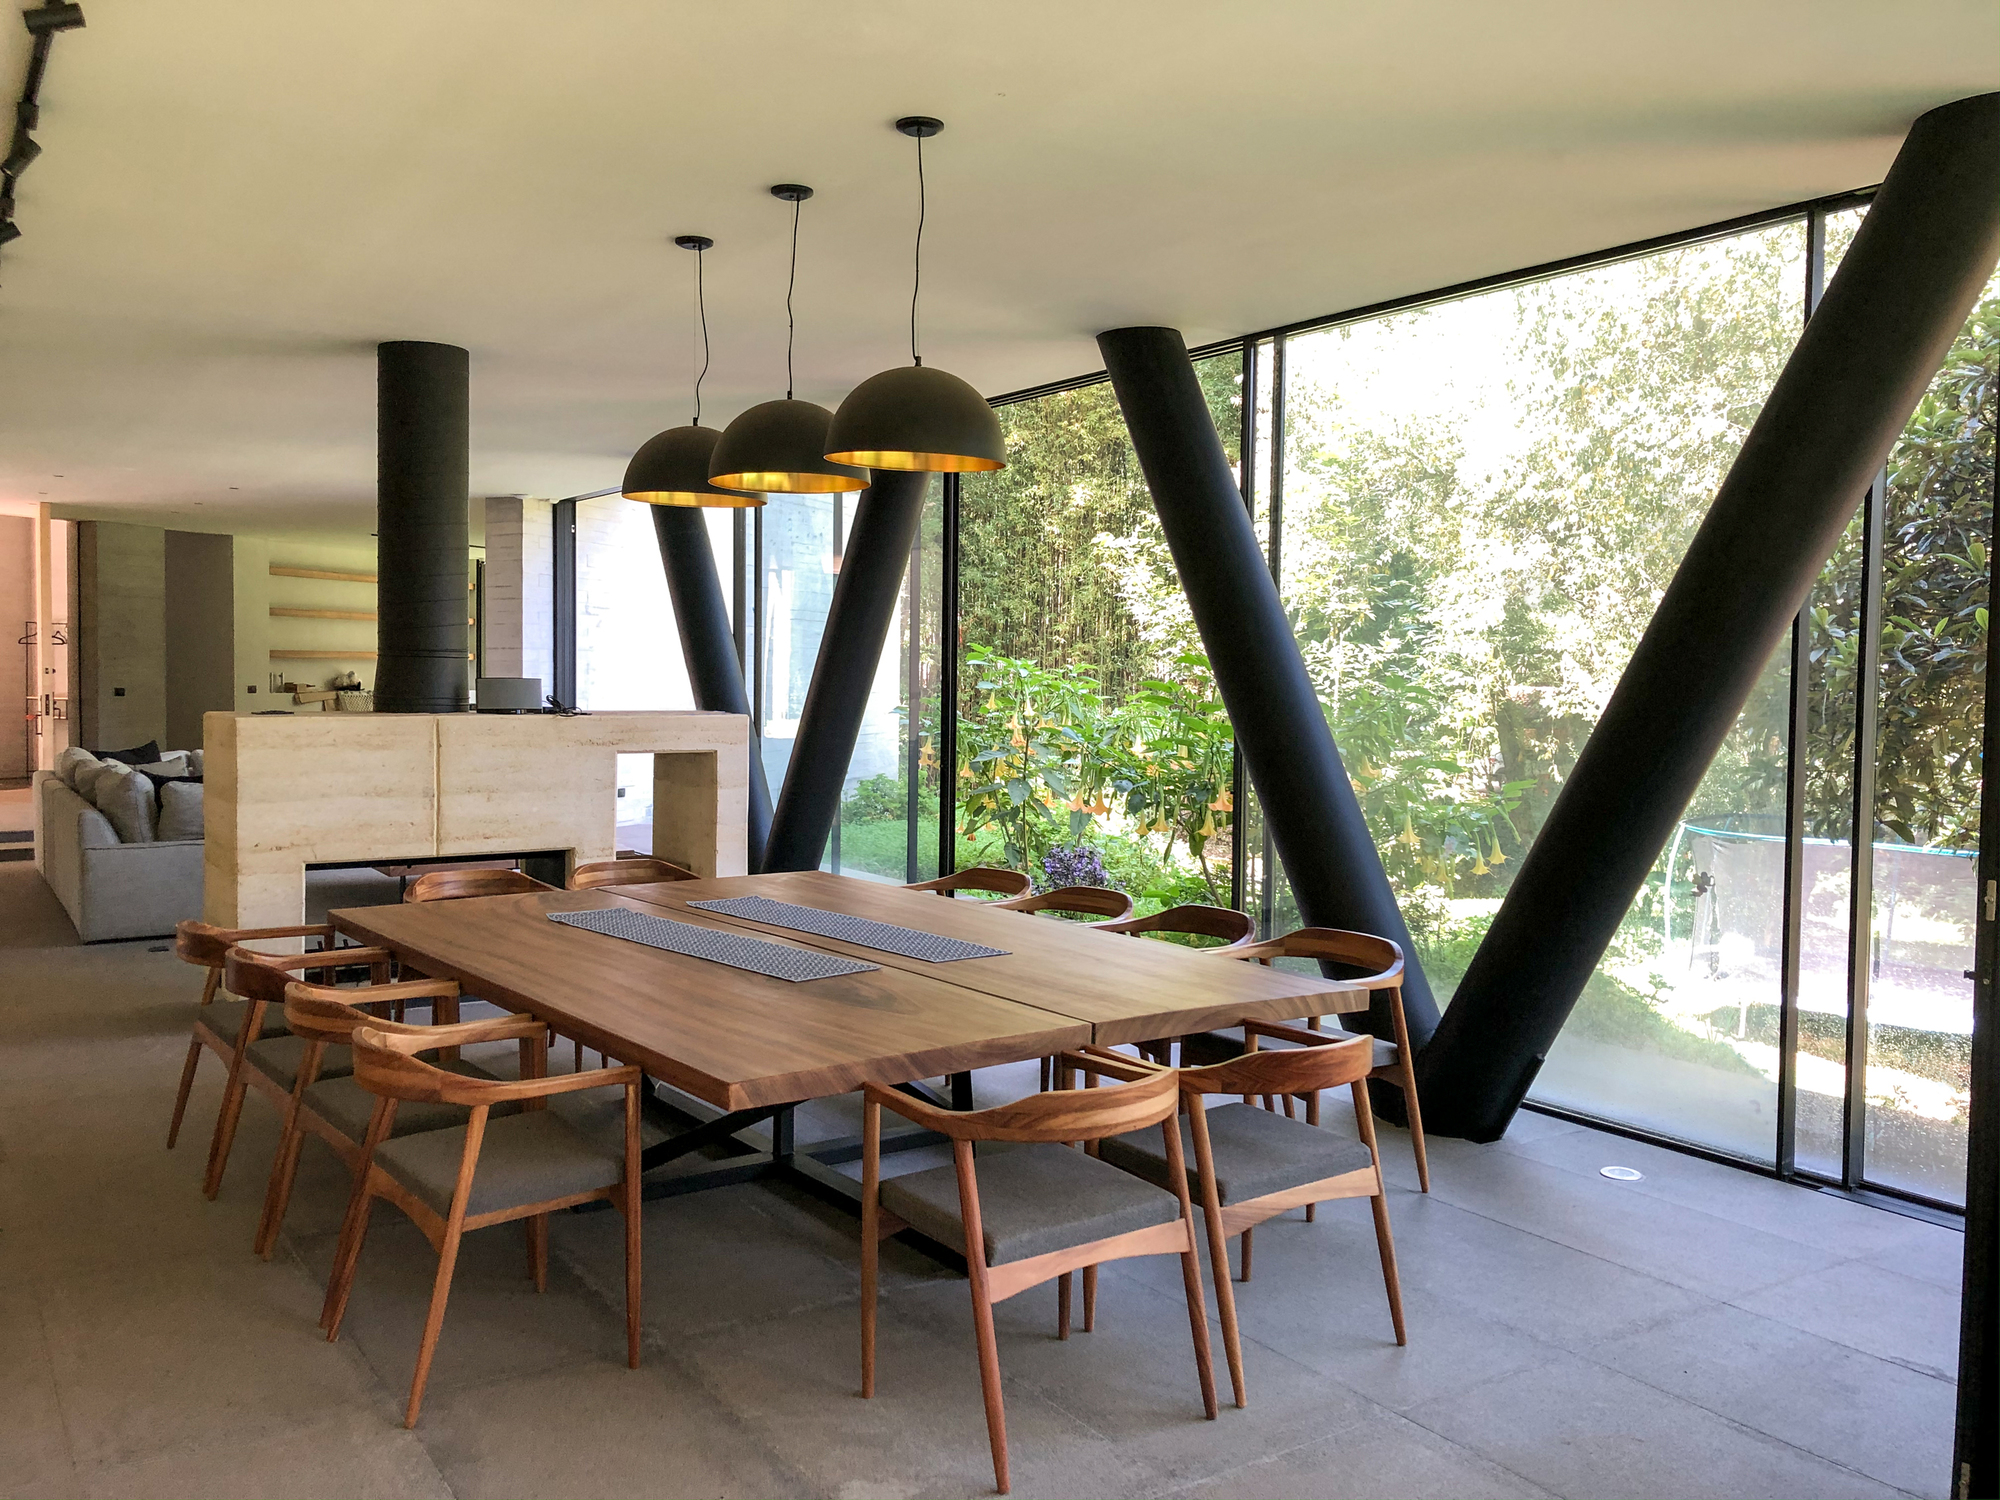 Black pendants and structural beams bring contrast and modularity to the Mexican home